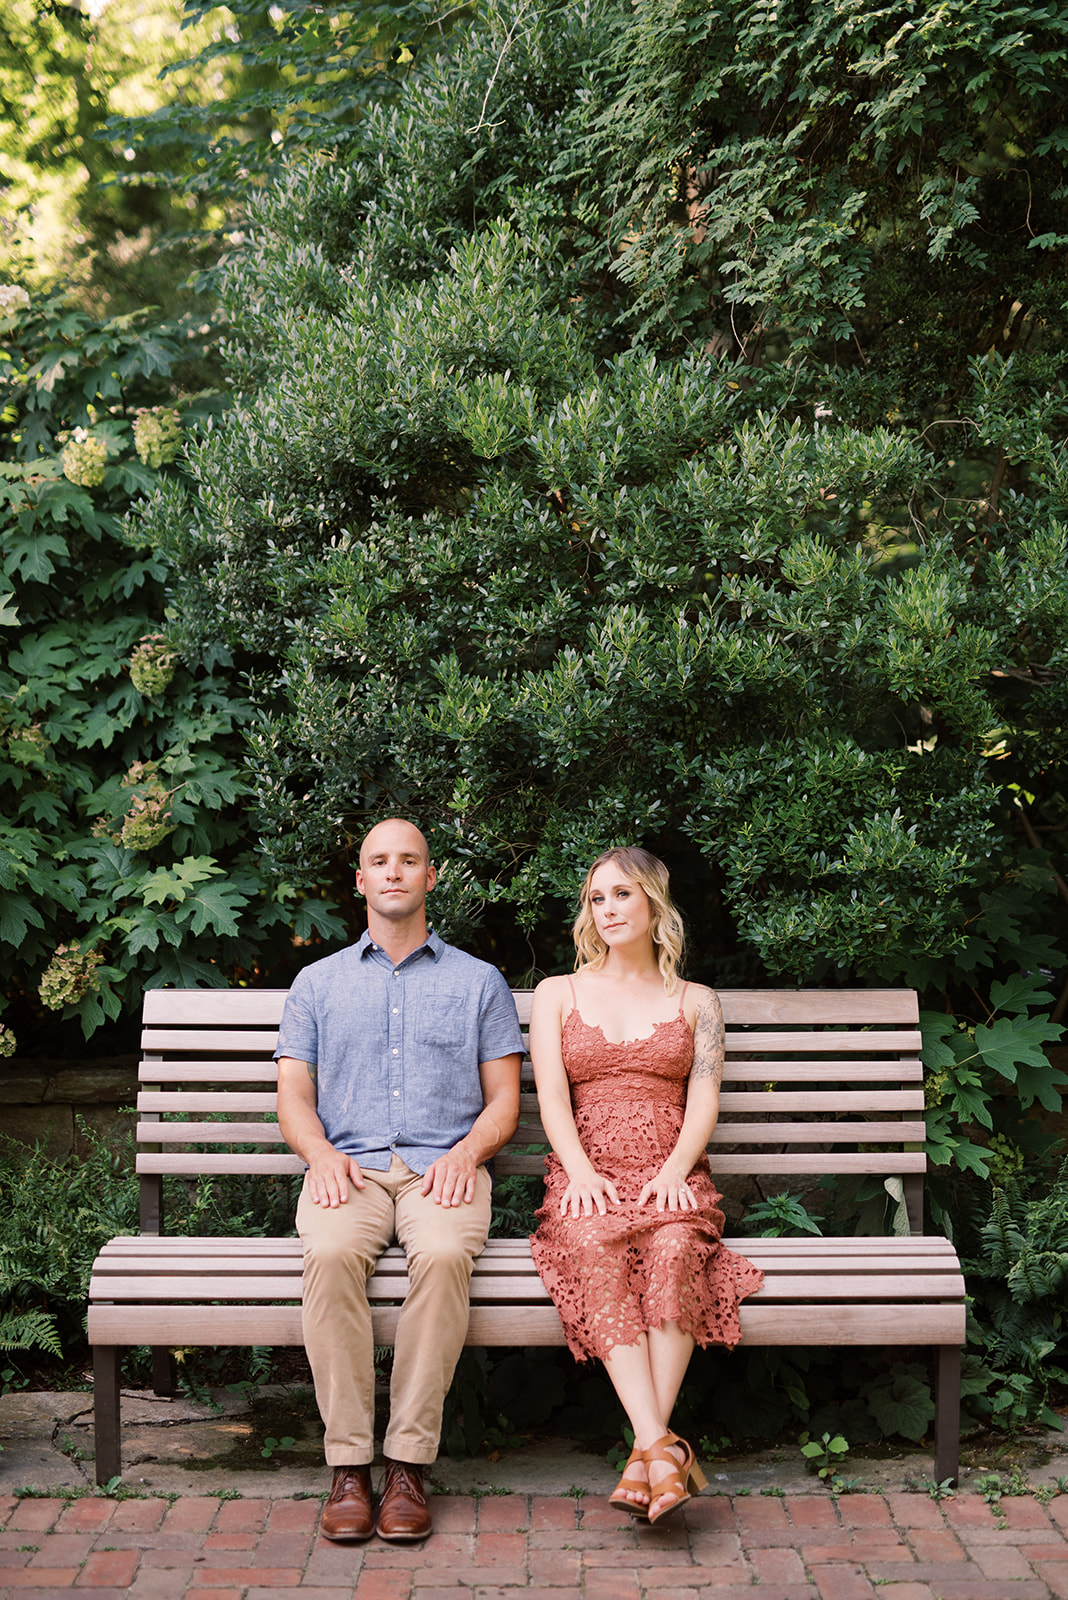 Longwood Gardens engagement session reminiscent of Forrest Gump.